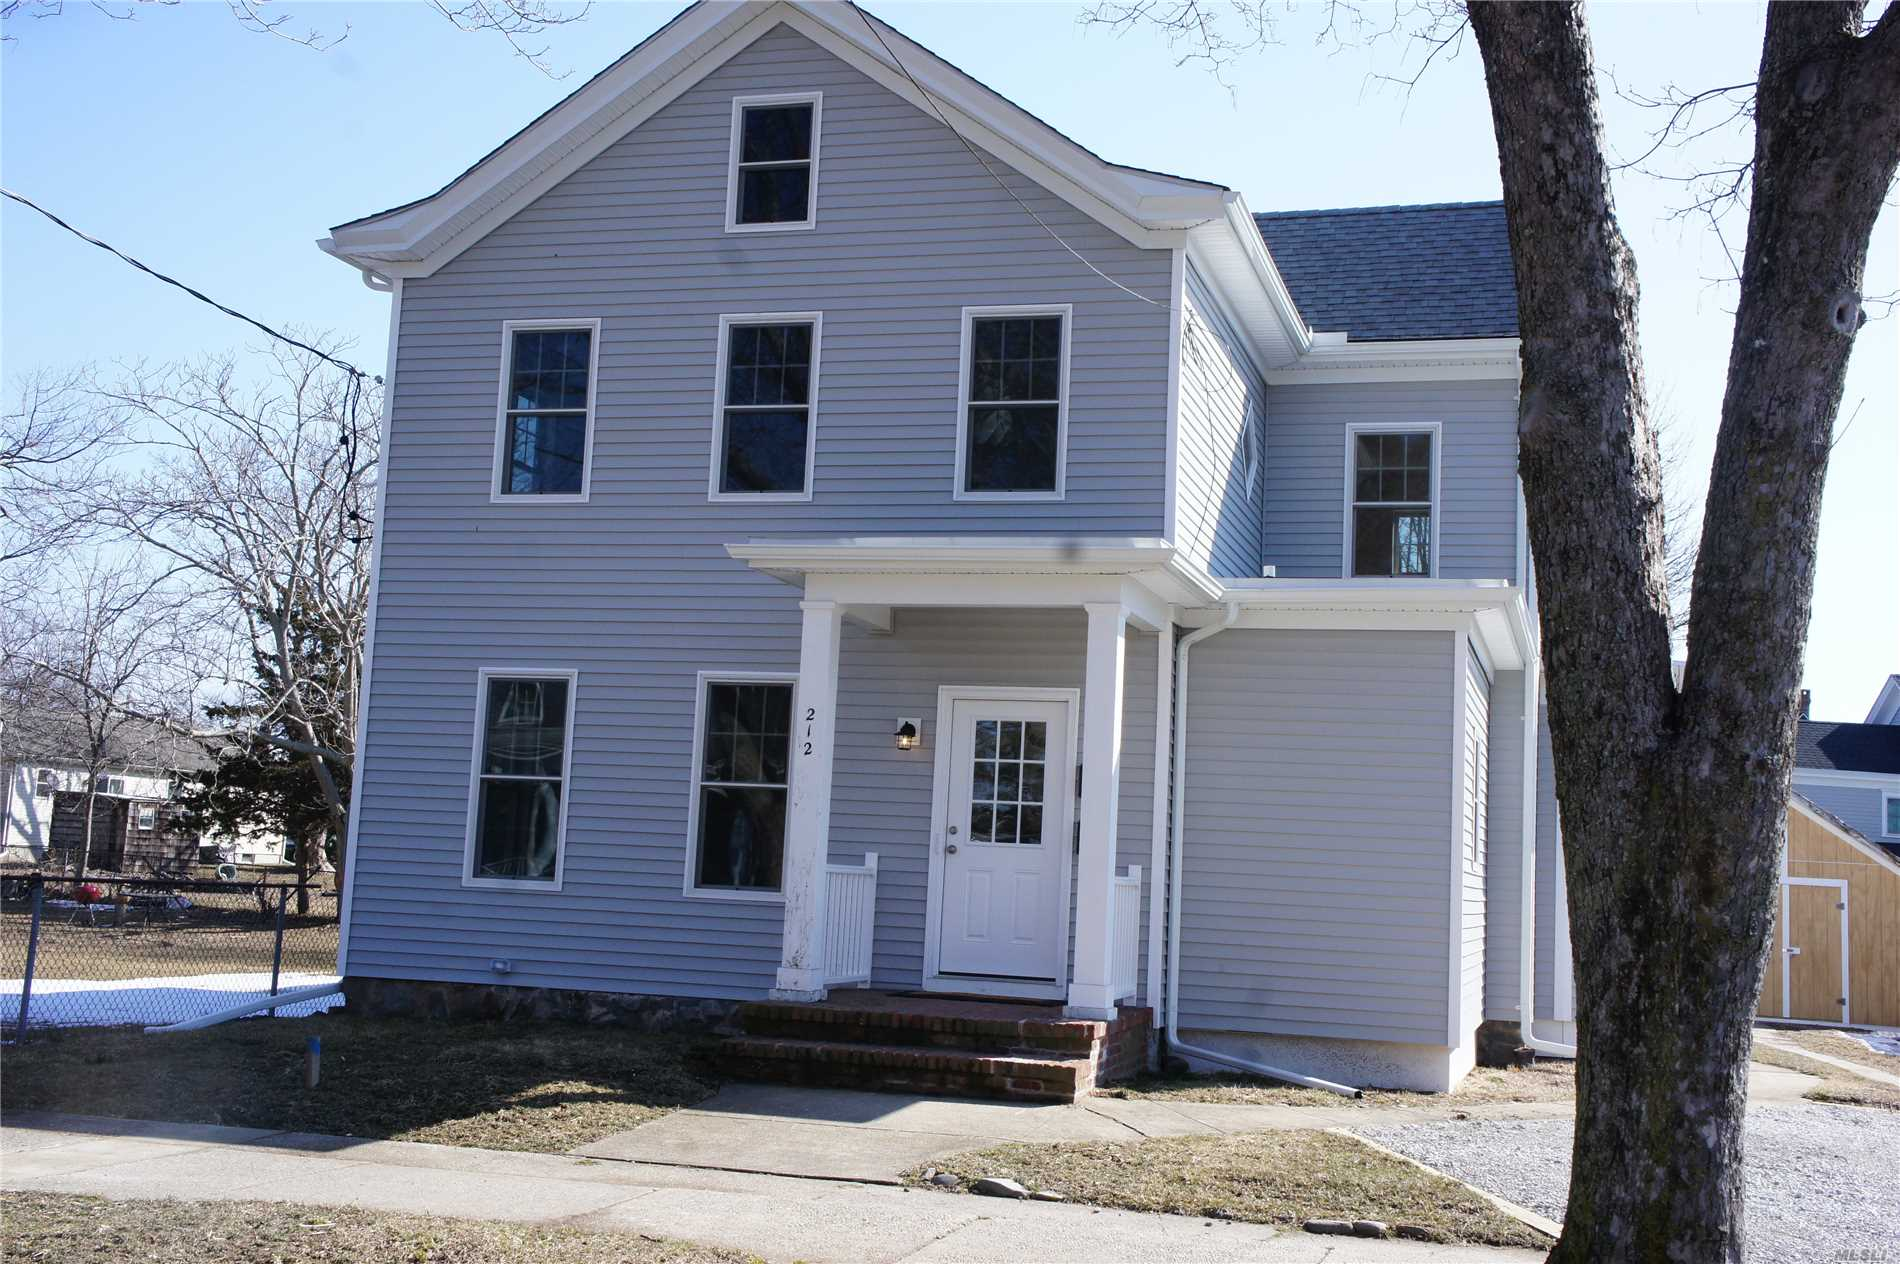 Fully Renovated 2 Family Home in the Heart of Greenport Village. Close to all.